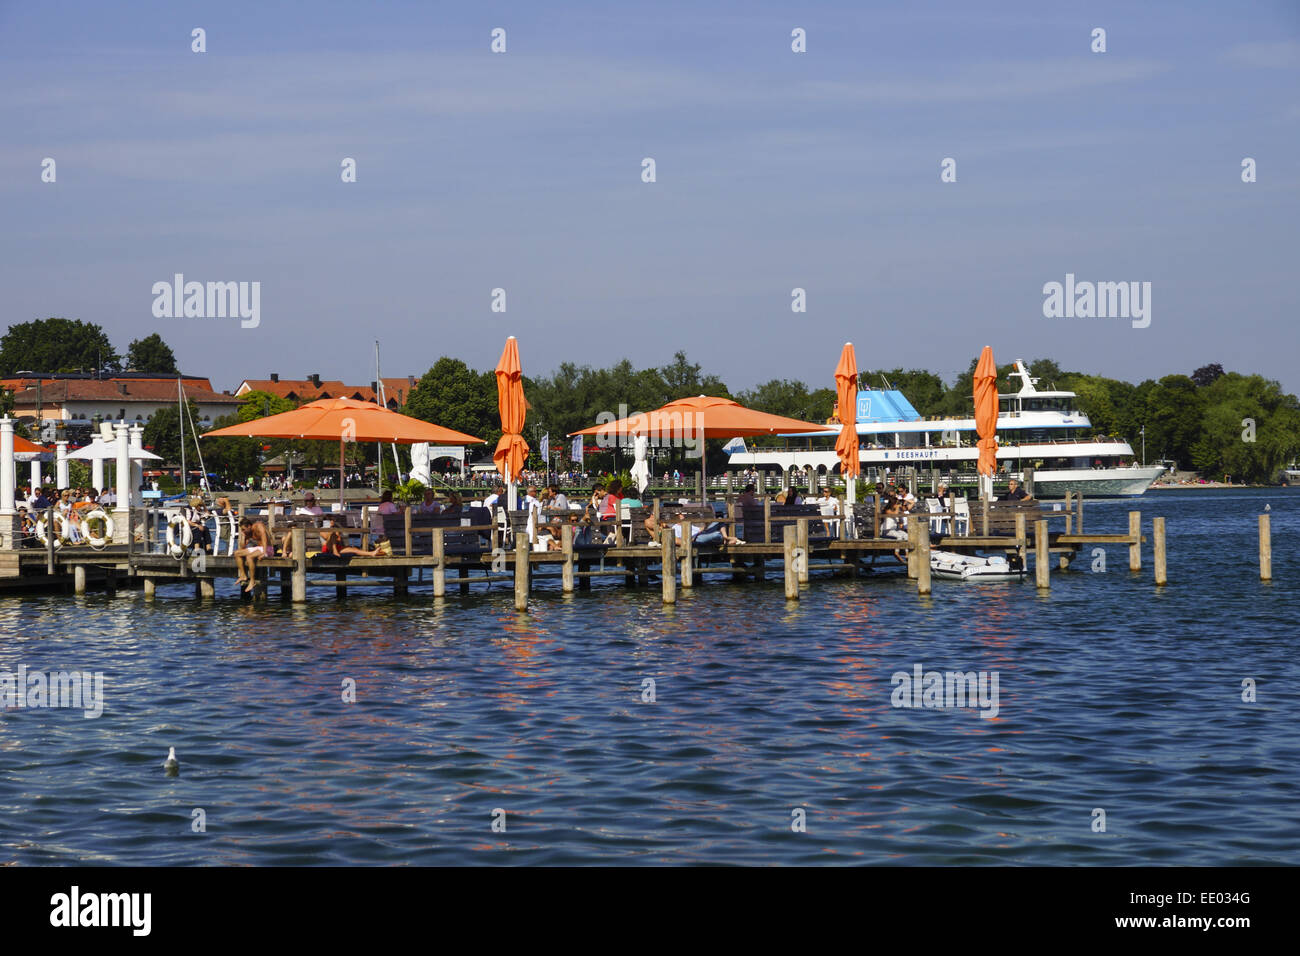 starnberg am starnberger see bayern oberbayern deutschland stock photo 77449136 alamy. Black Bedroom Furniture Sets. Home Design Ideas